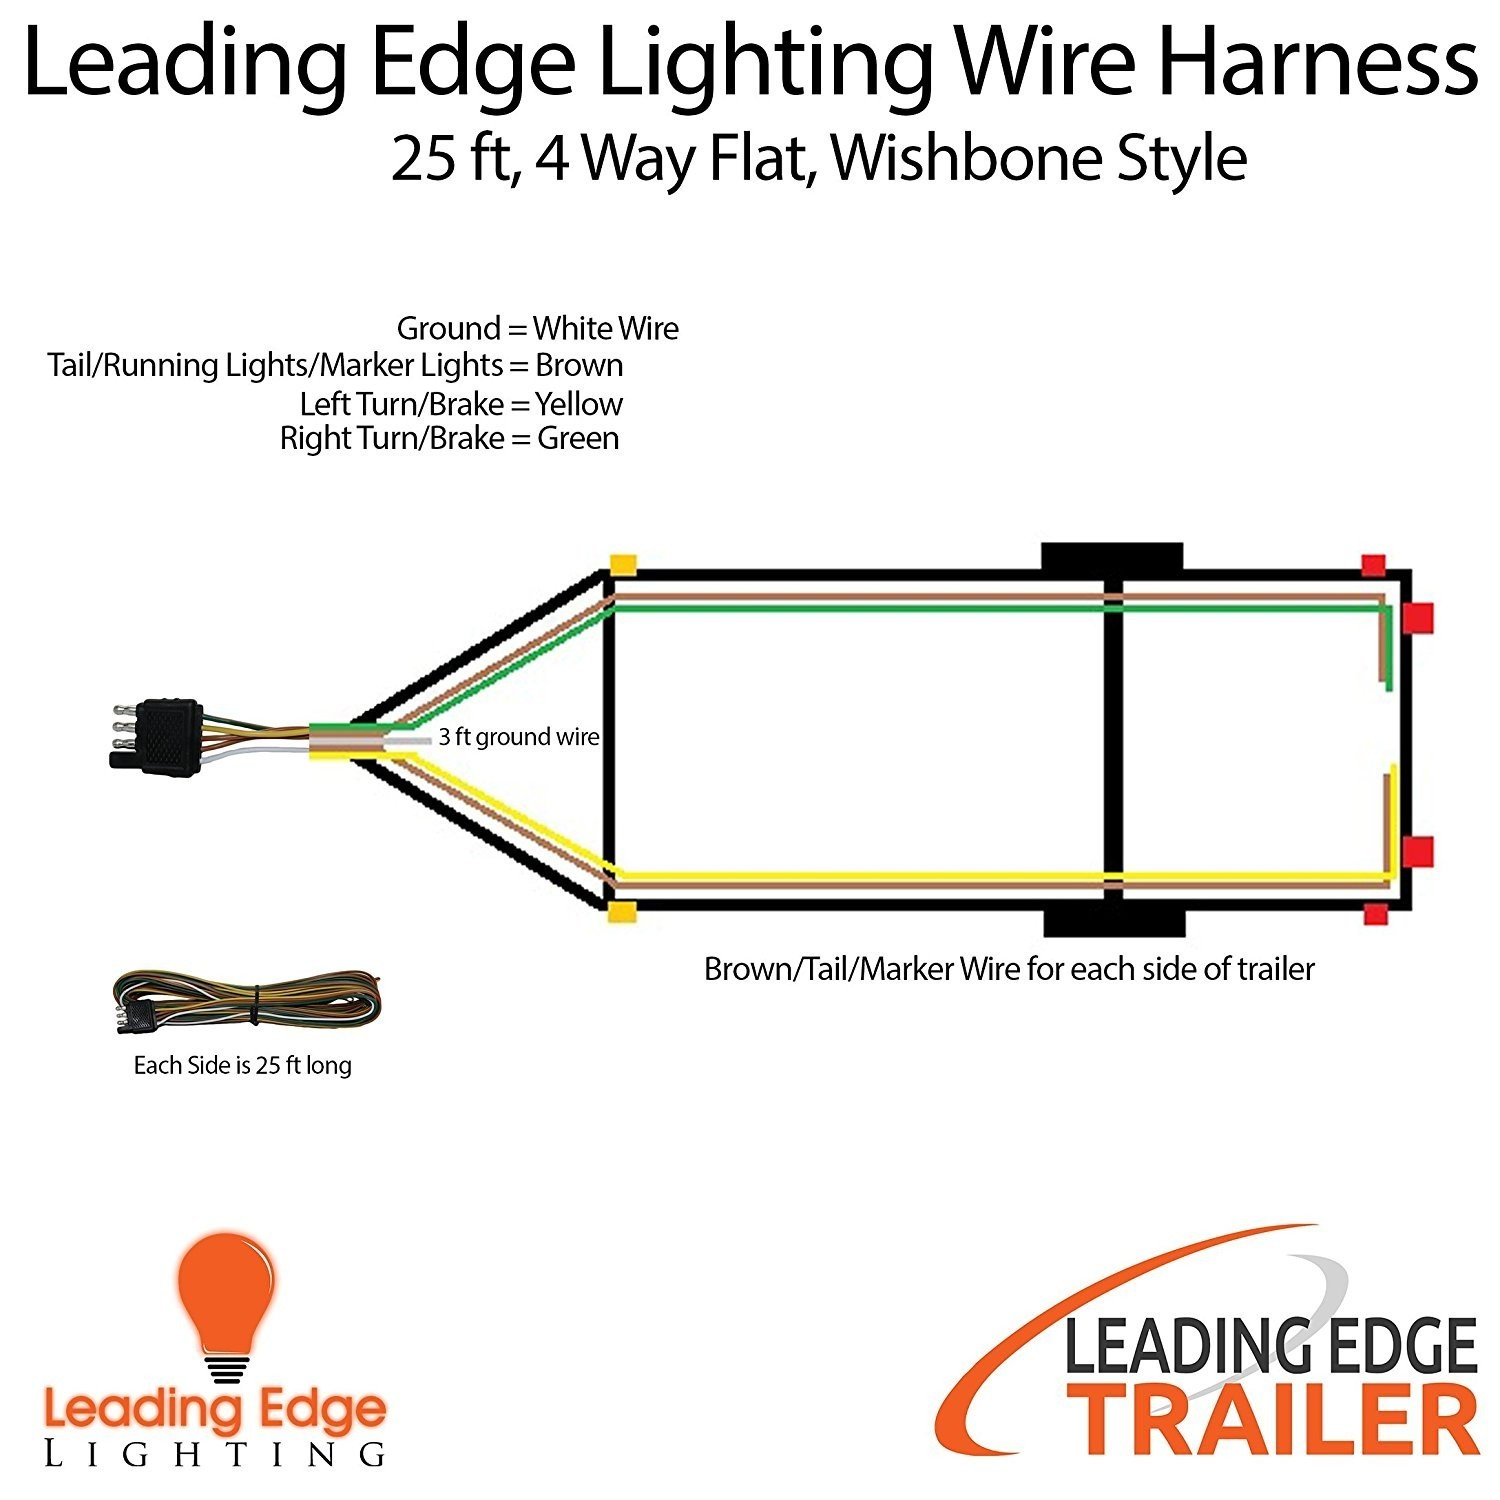 Boat Bonding Wiring Diagram from wholefoodsonabudget.com